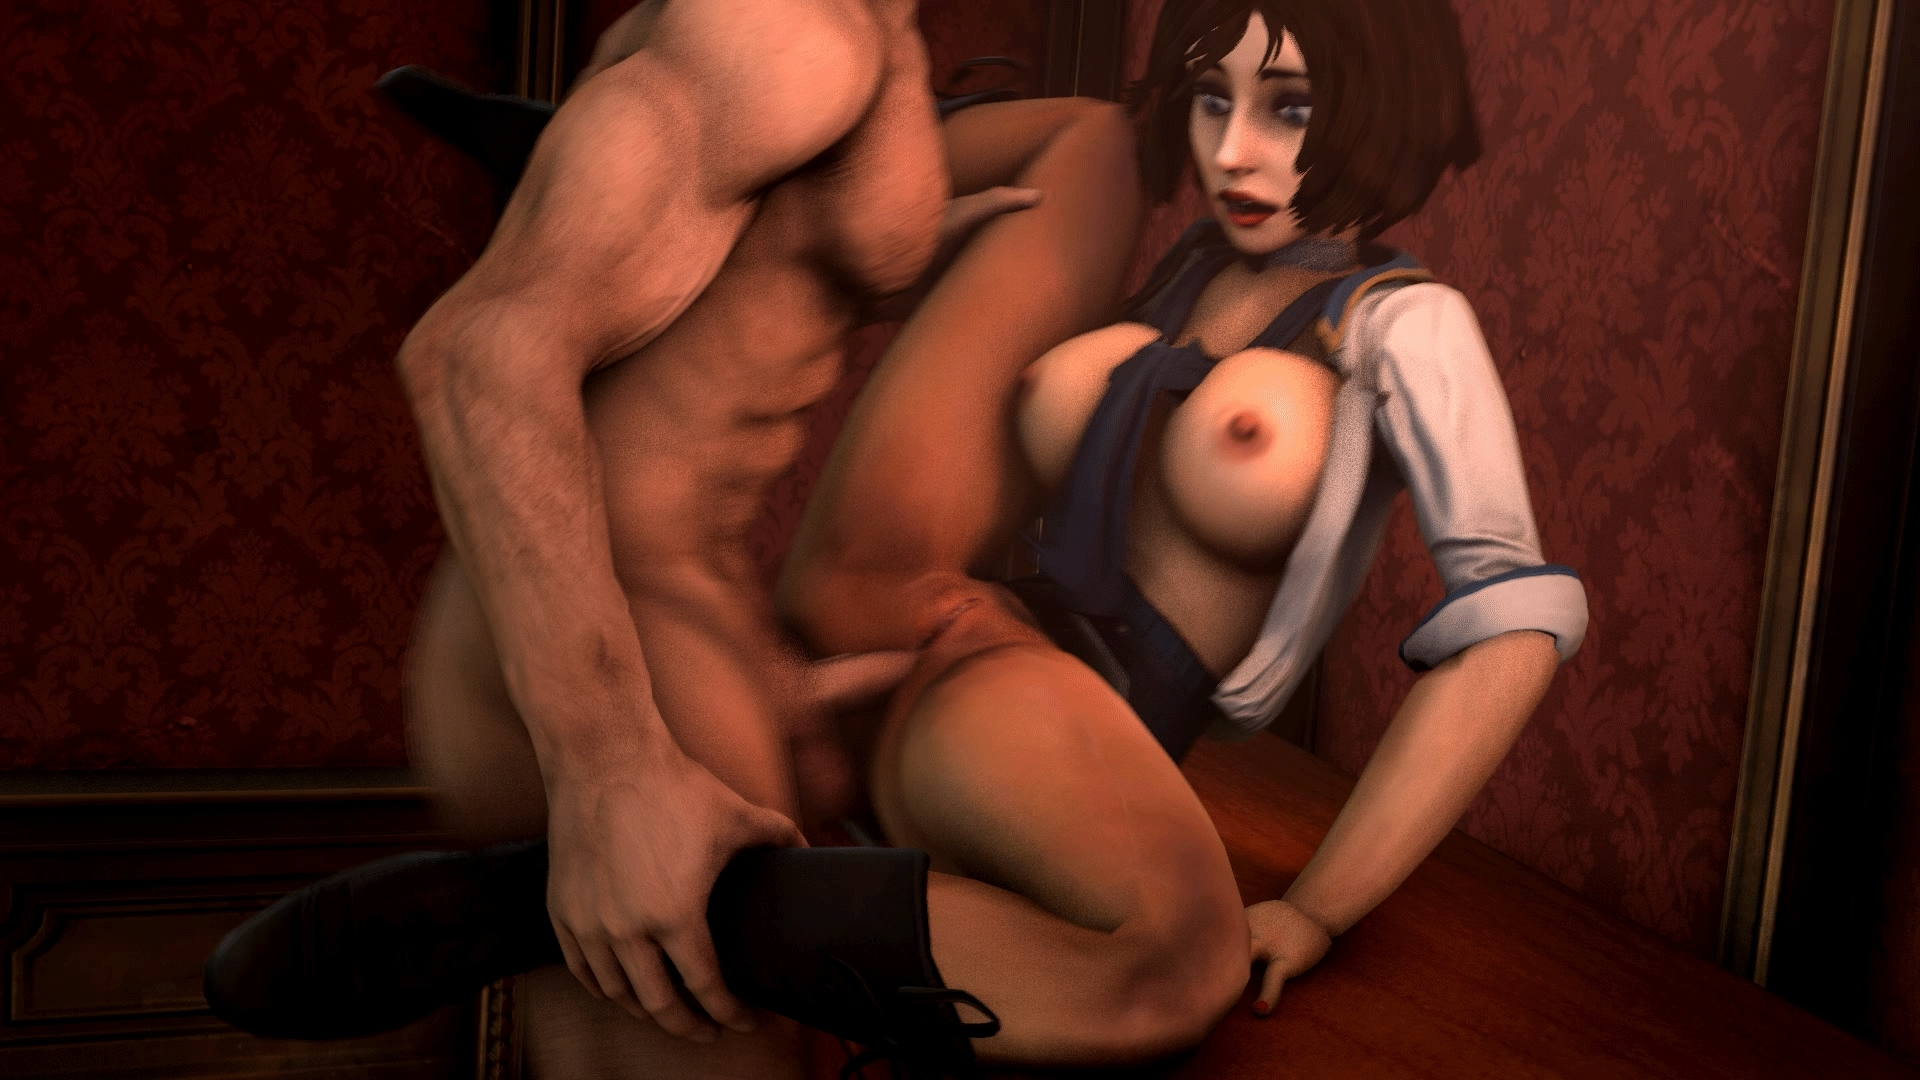 Bioshock infinite girl xxx anime adult pics